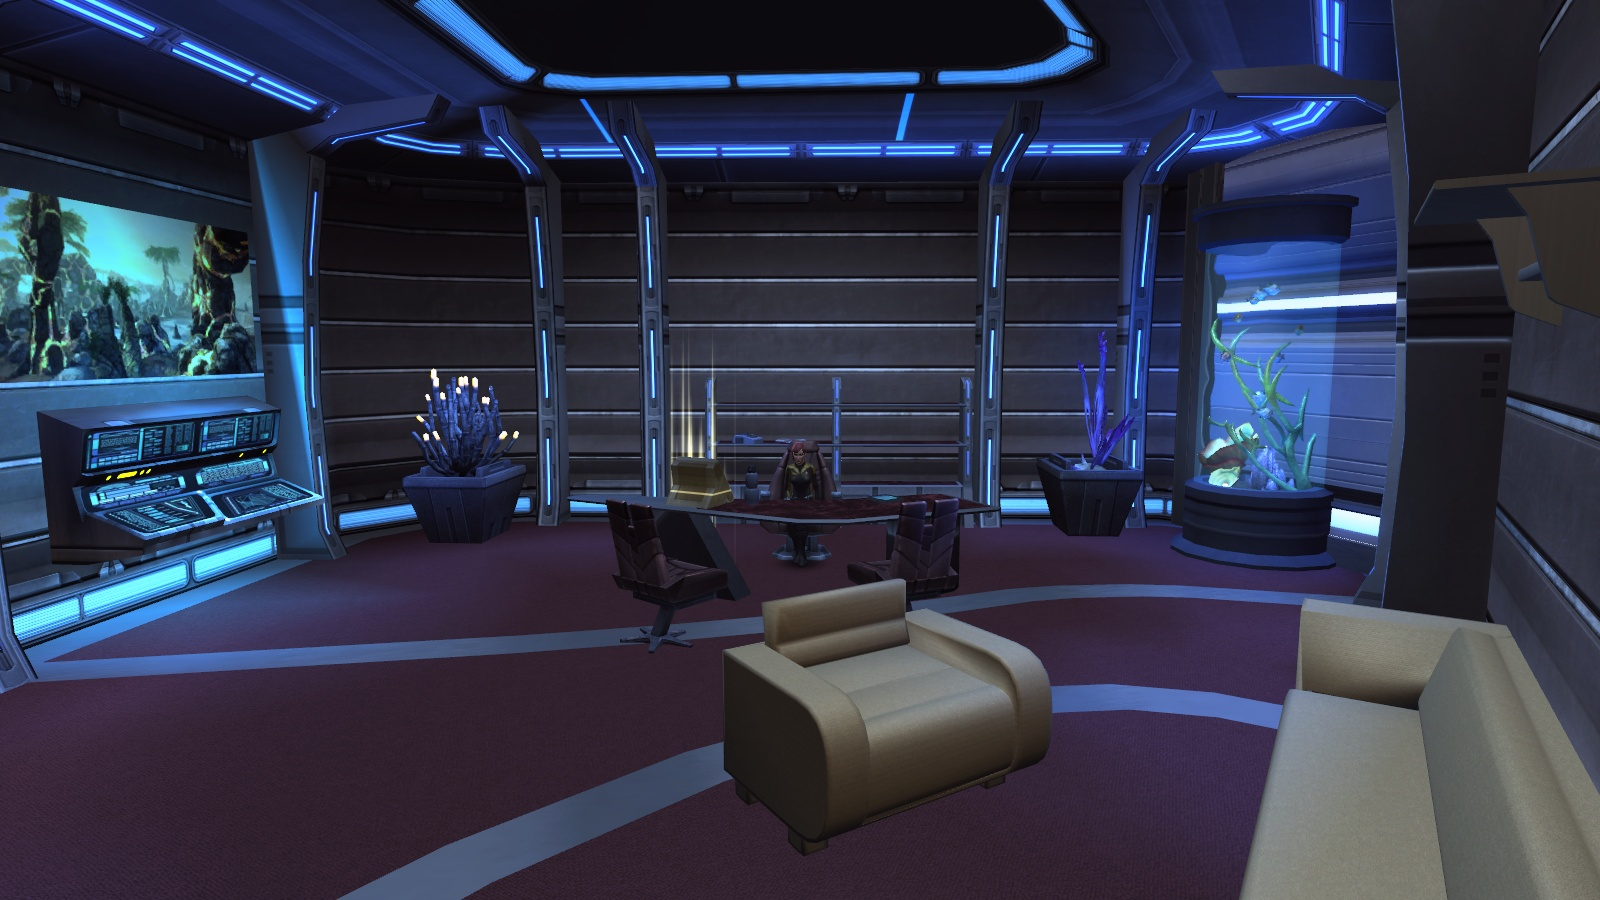 Living Room Color Palette The Captain S Ready Room By Xenlanayar On Deviantart